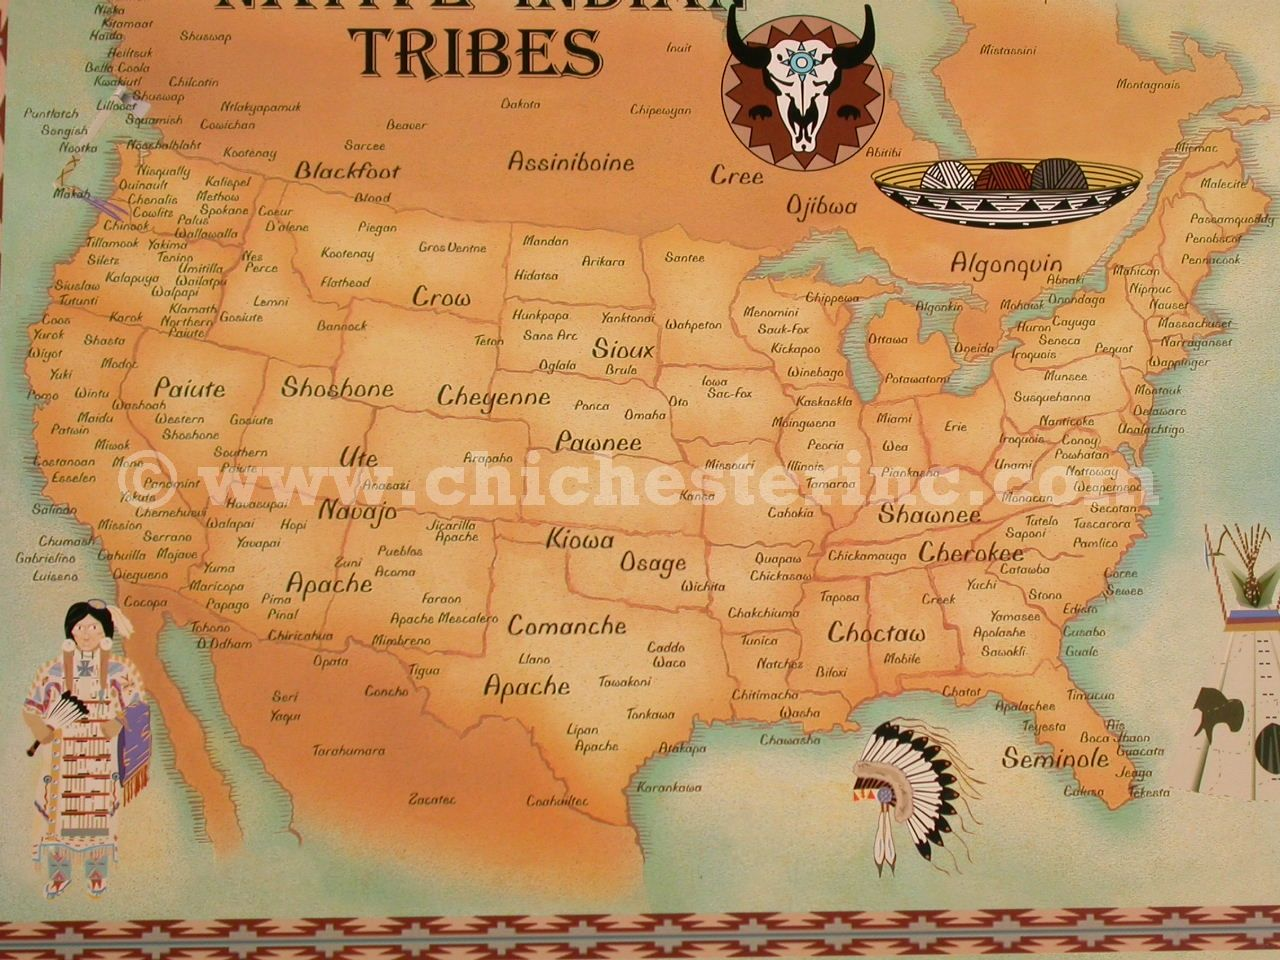 Best Images About Maps And Symbols For Native Americans On - Map of native american tribes in arizona